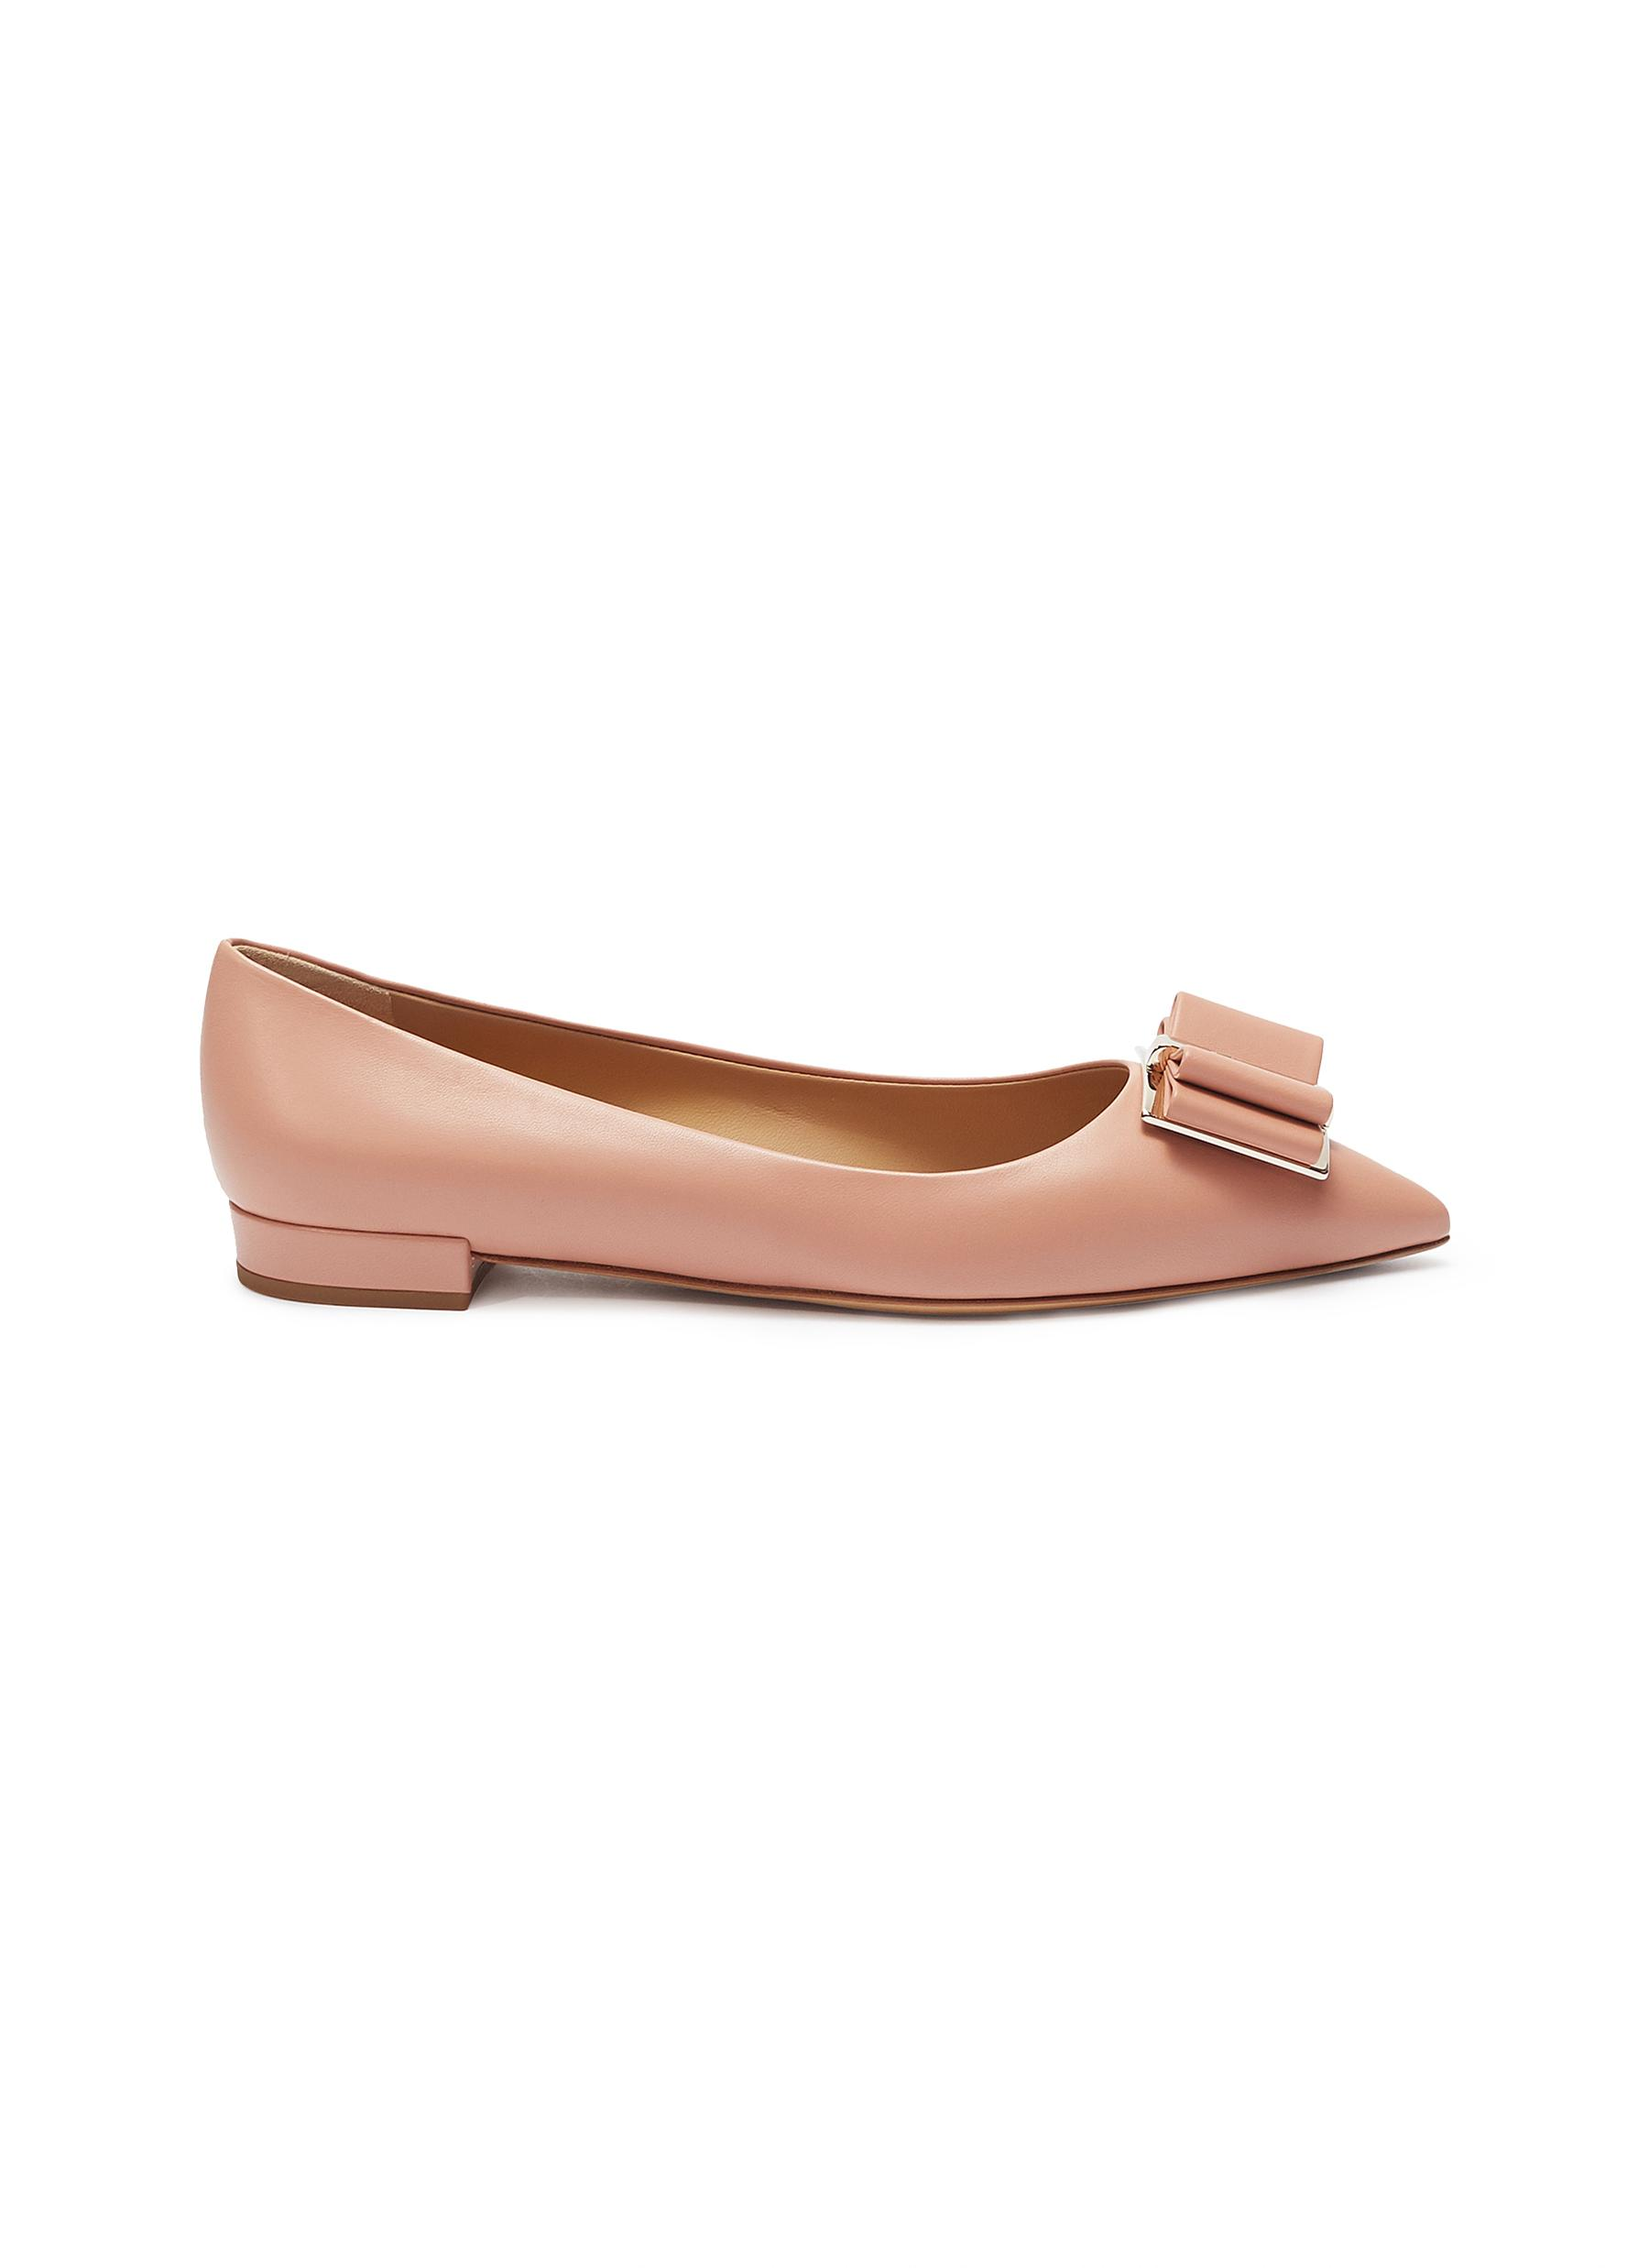 0ead9440345 Main View - Click To Enlarge - Salvatore Ferragamo -  Zeri  leather skimmer  flats